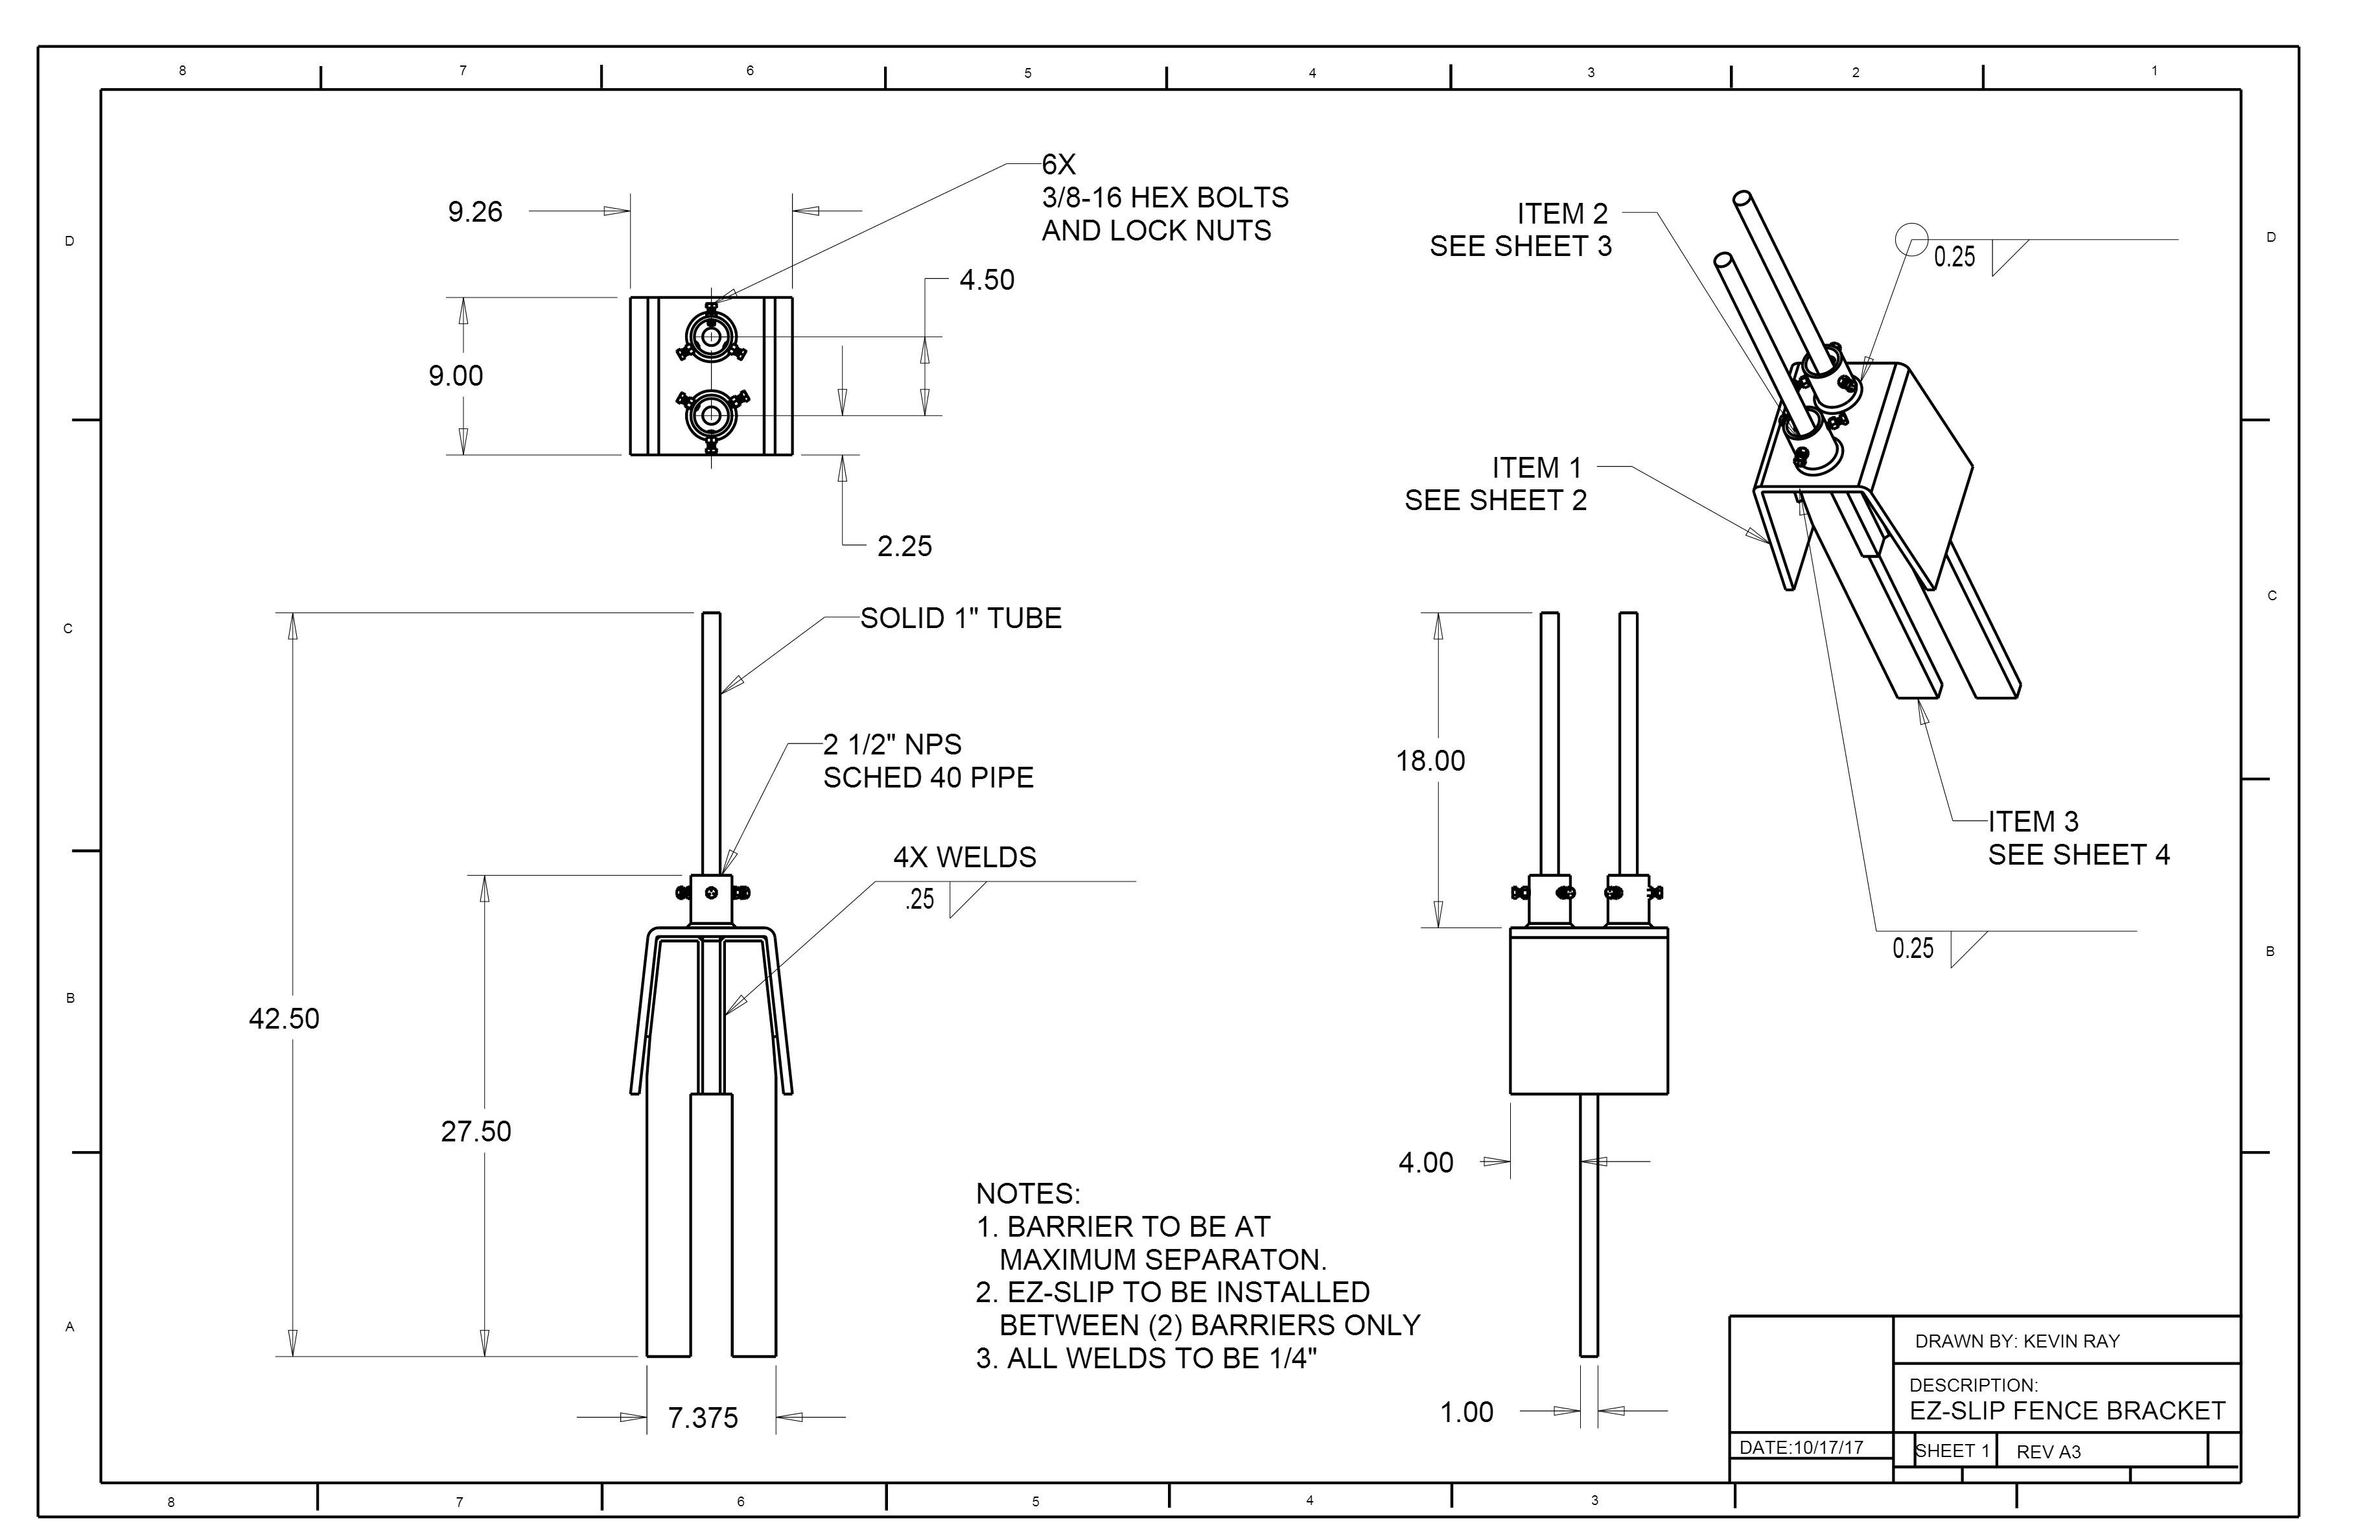 Ez Slip Specifications Jcny Industries Electric Fence Schematic Fences All Components Are Joined Using Welds And Designed To Fit In Between 2 J Hooks Concrete Barriers At Maximum Separation